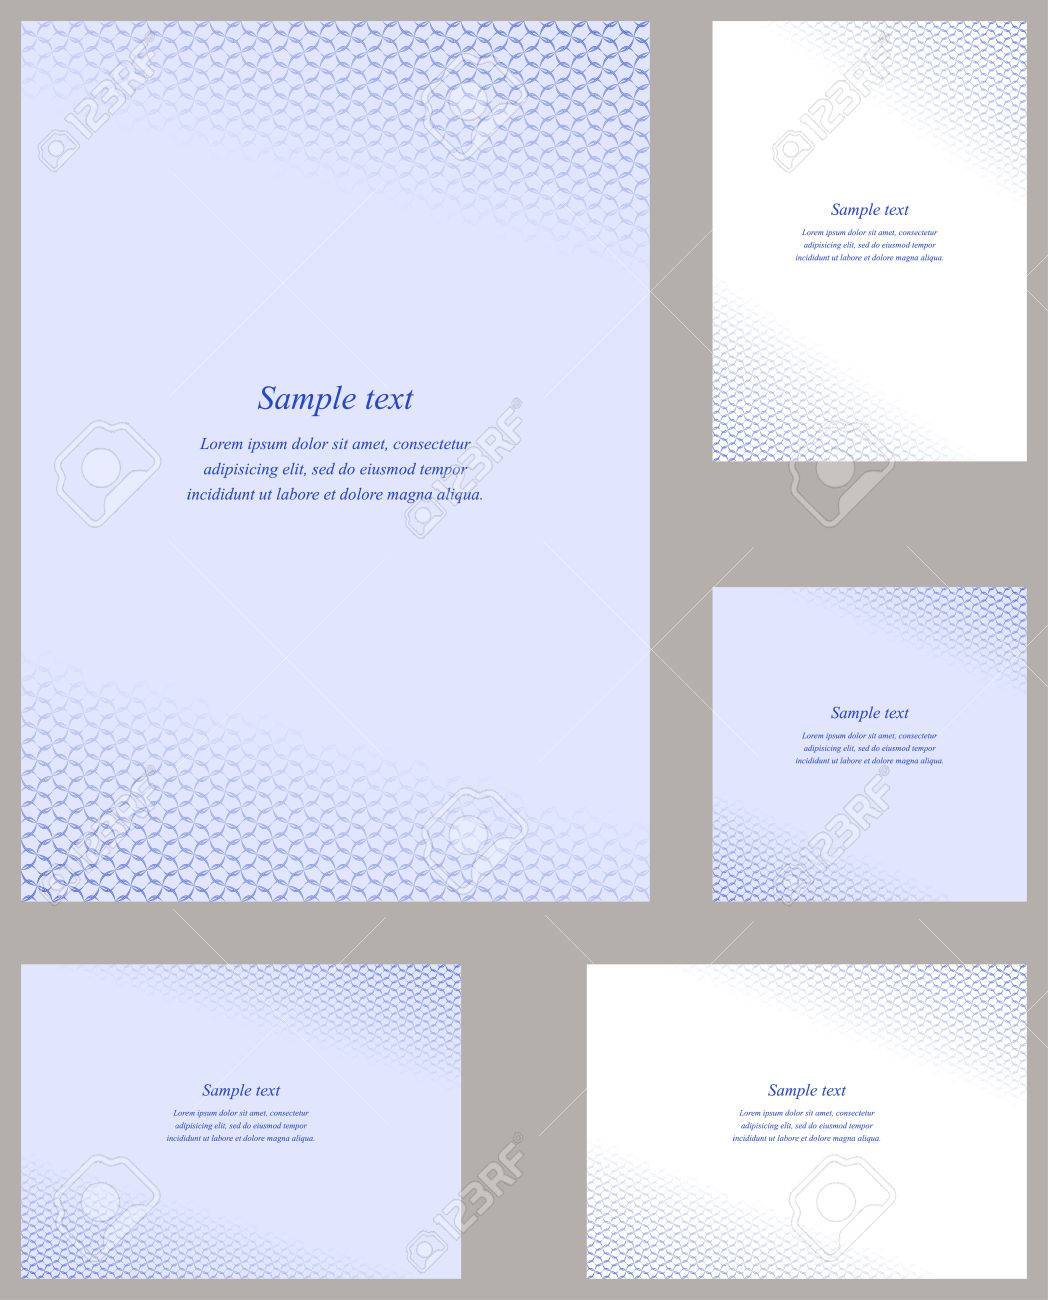 Blue Page Corner Design Cover Template Set Royalty Free Cliparts